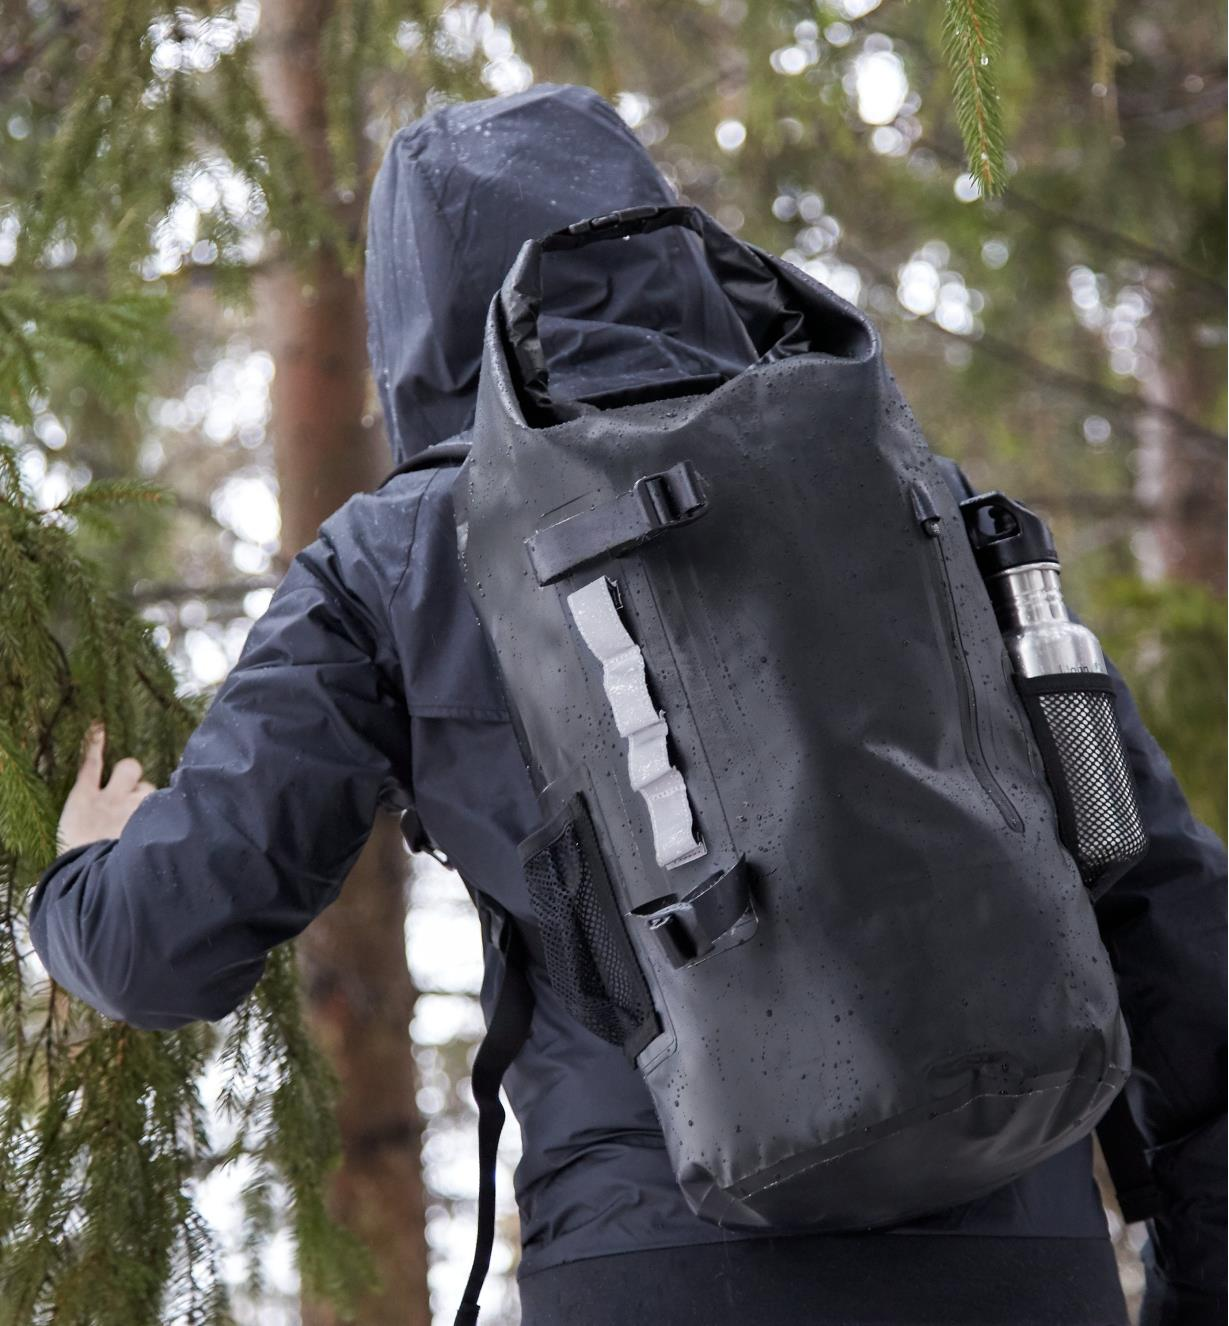 A rain-splashed hiker wears a waterproof dry bag backpack that has a drink bottle in the mesh side pocket